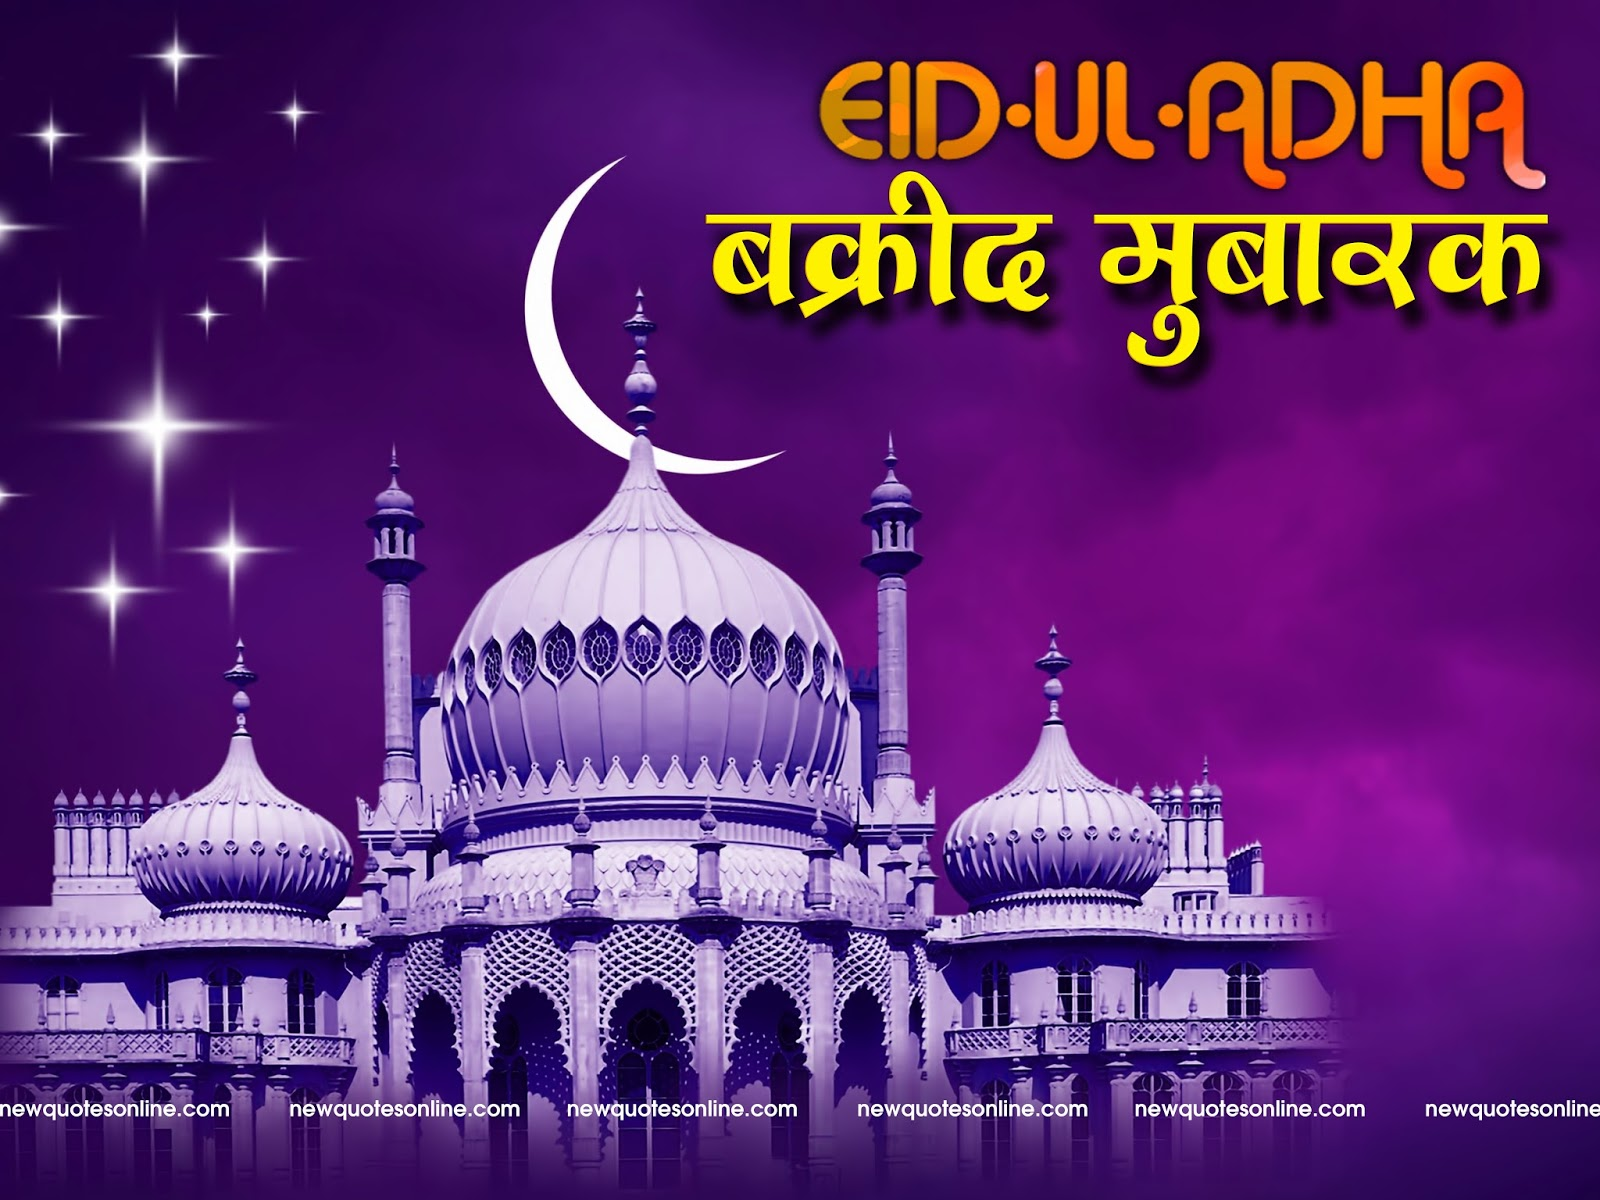 Eid ul adha happy bakrid wishes pictures and greetings new quotes download free bakrid happy eid ul adha wishing greetings cards pictures images and photos happy bakrid blessings greetings kristyandbryce Choice Image